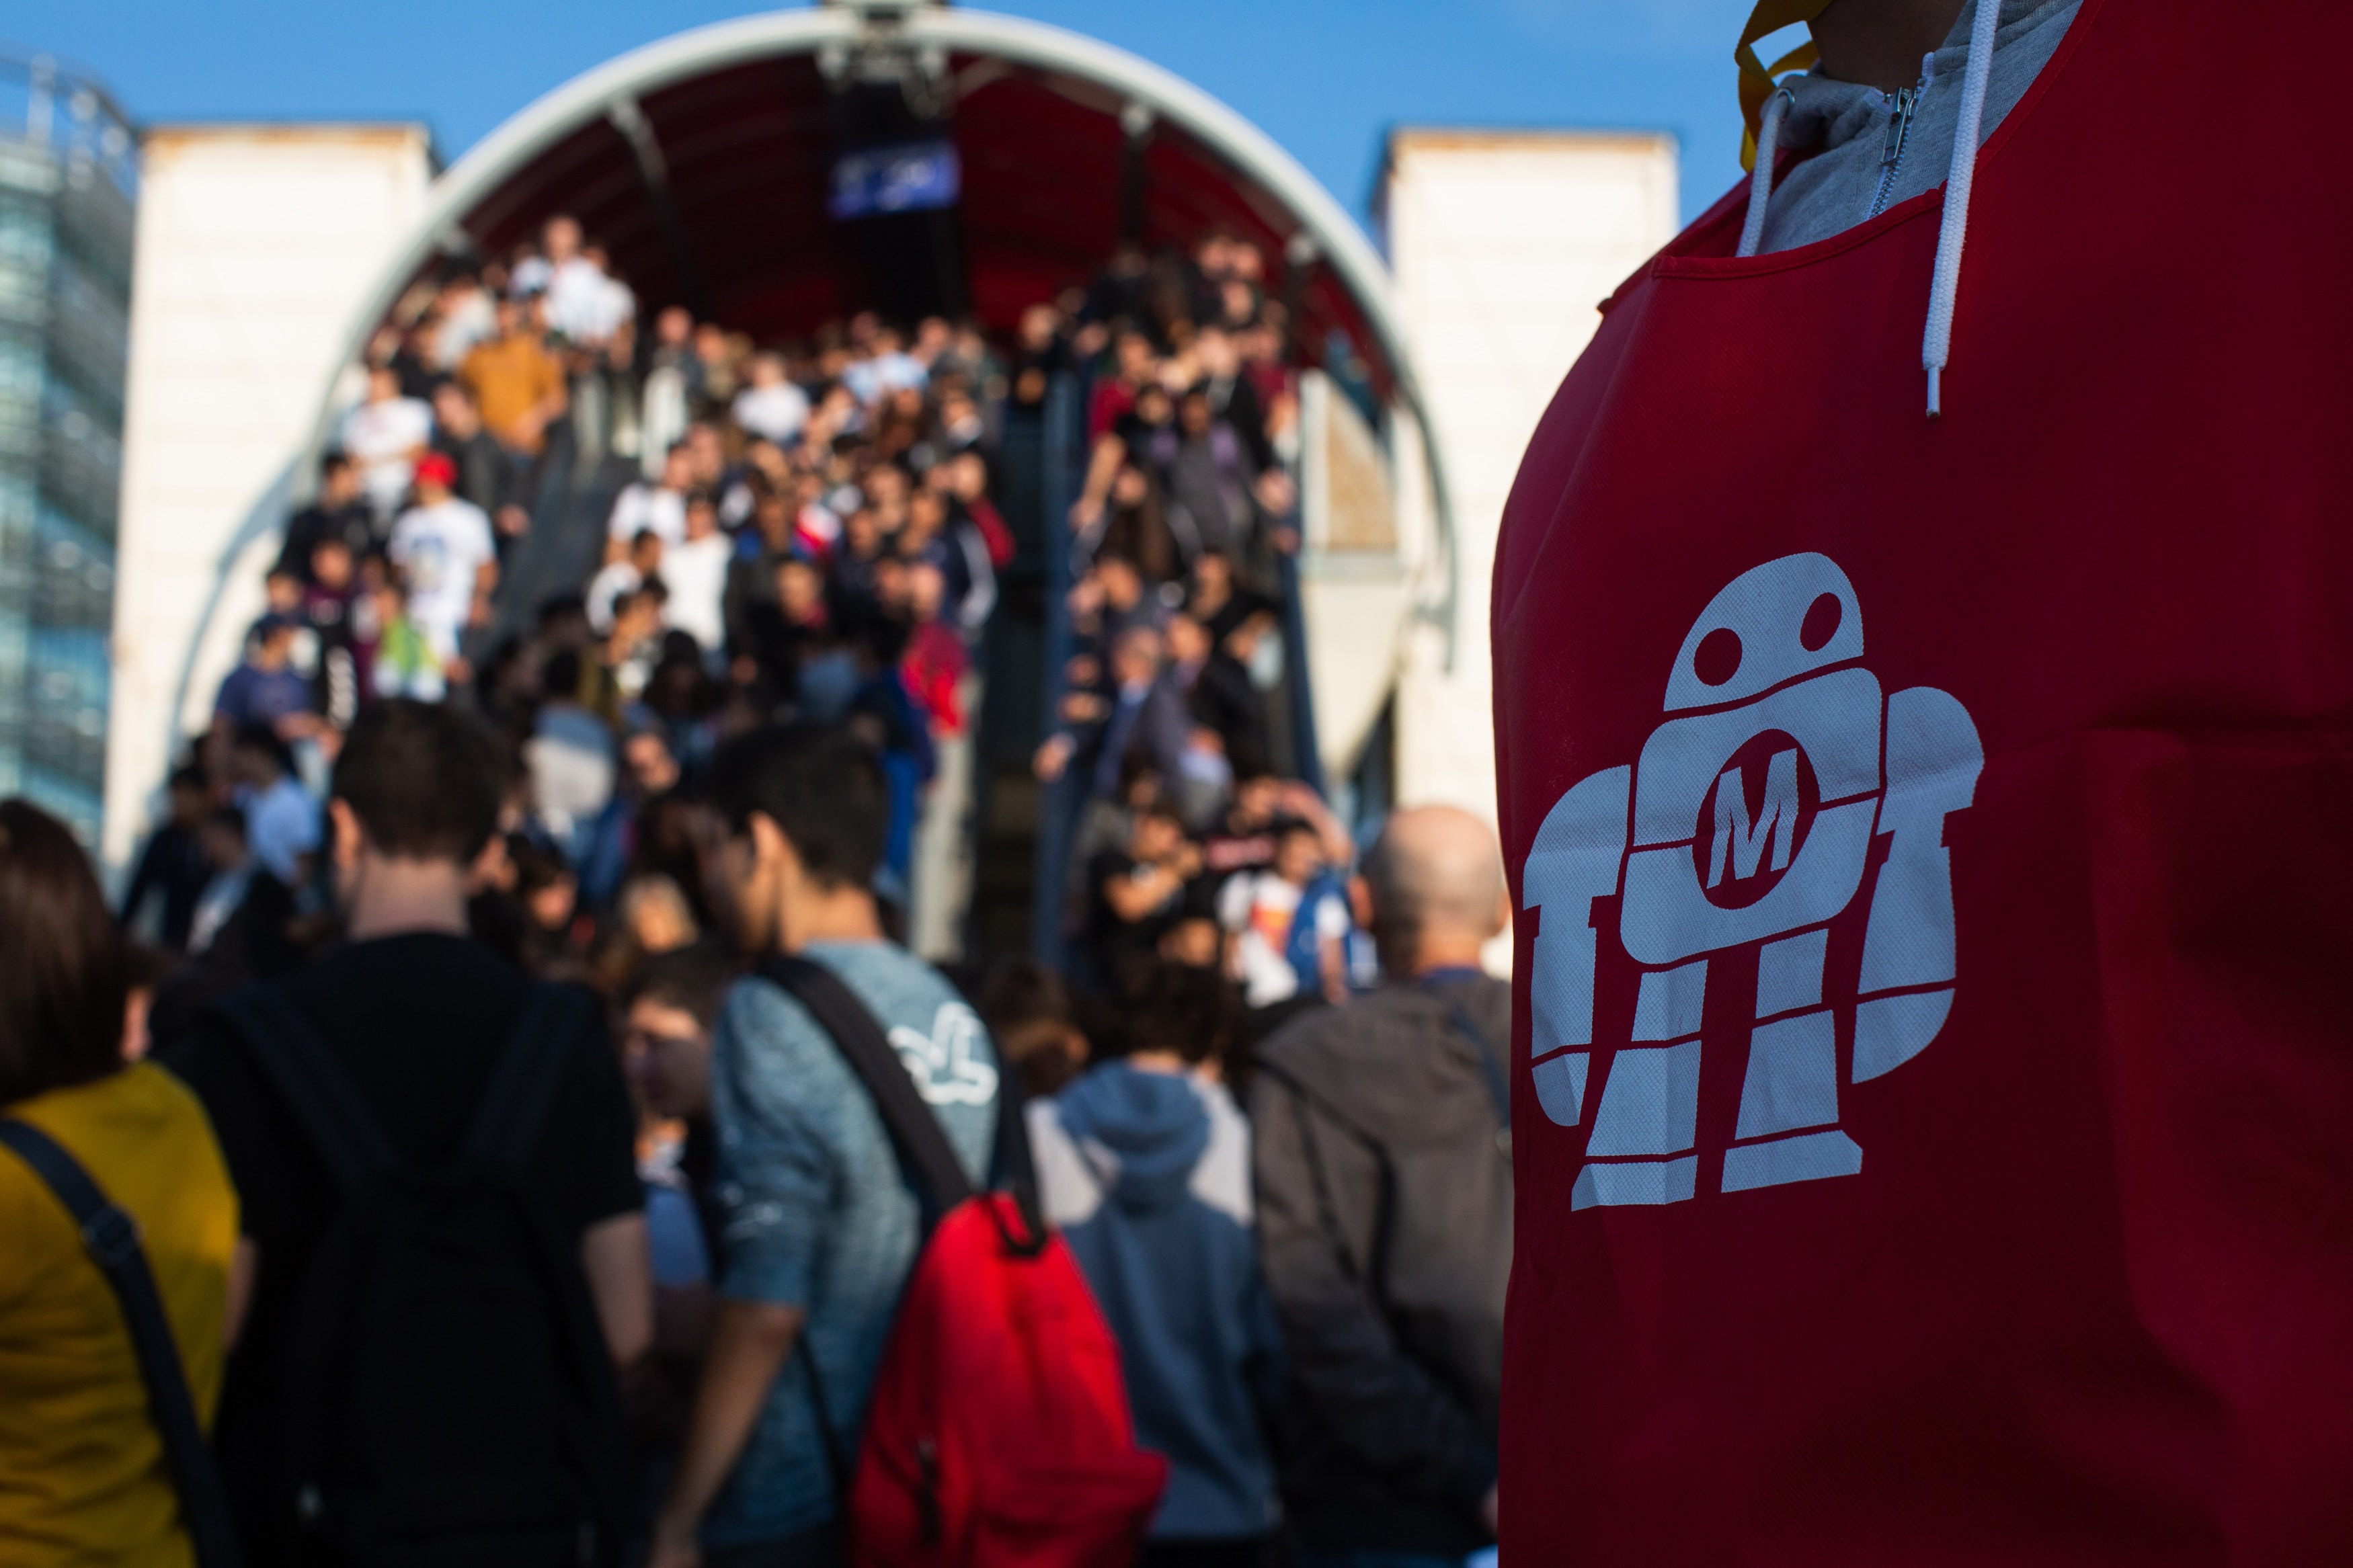 Riapre la Call for Makers di Maker Faire Rome, il più grande Show and Tell d'Europa per l'innovazione digitale